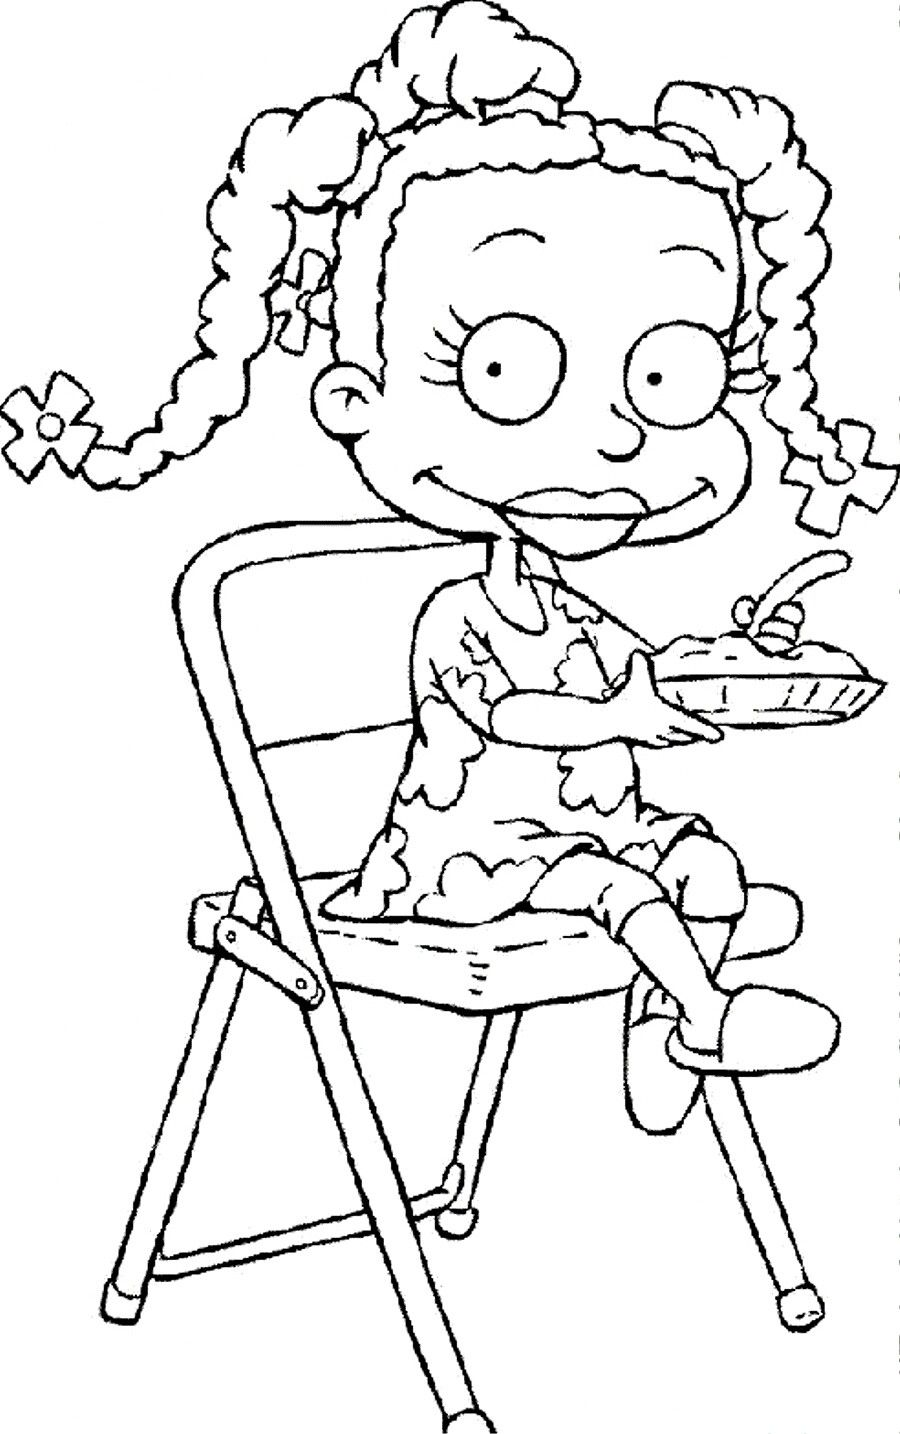 Pin By Funcraft Diy On Coloring Pages Rugrats Cartoon Coloring Pages Black History Month Crafts Coloring Pages